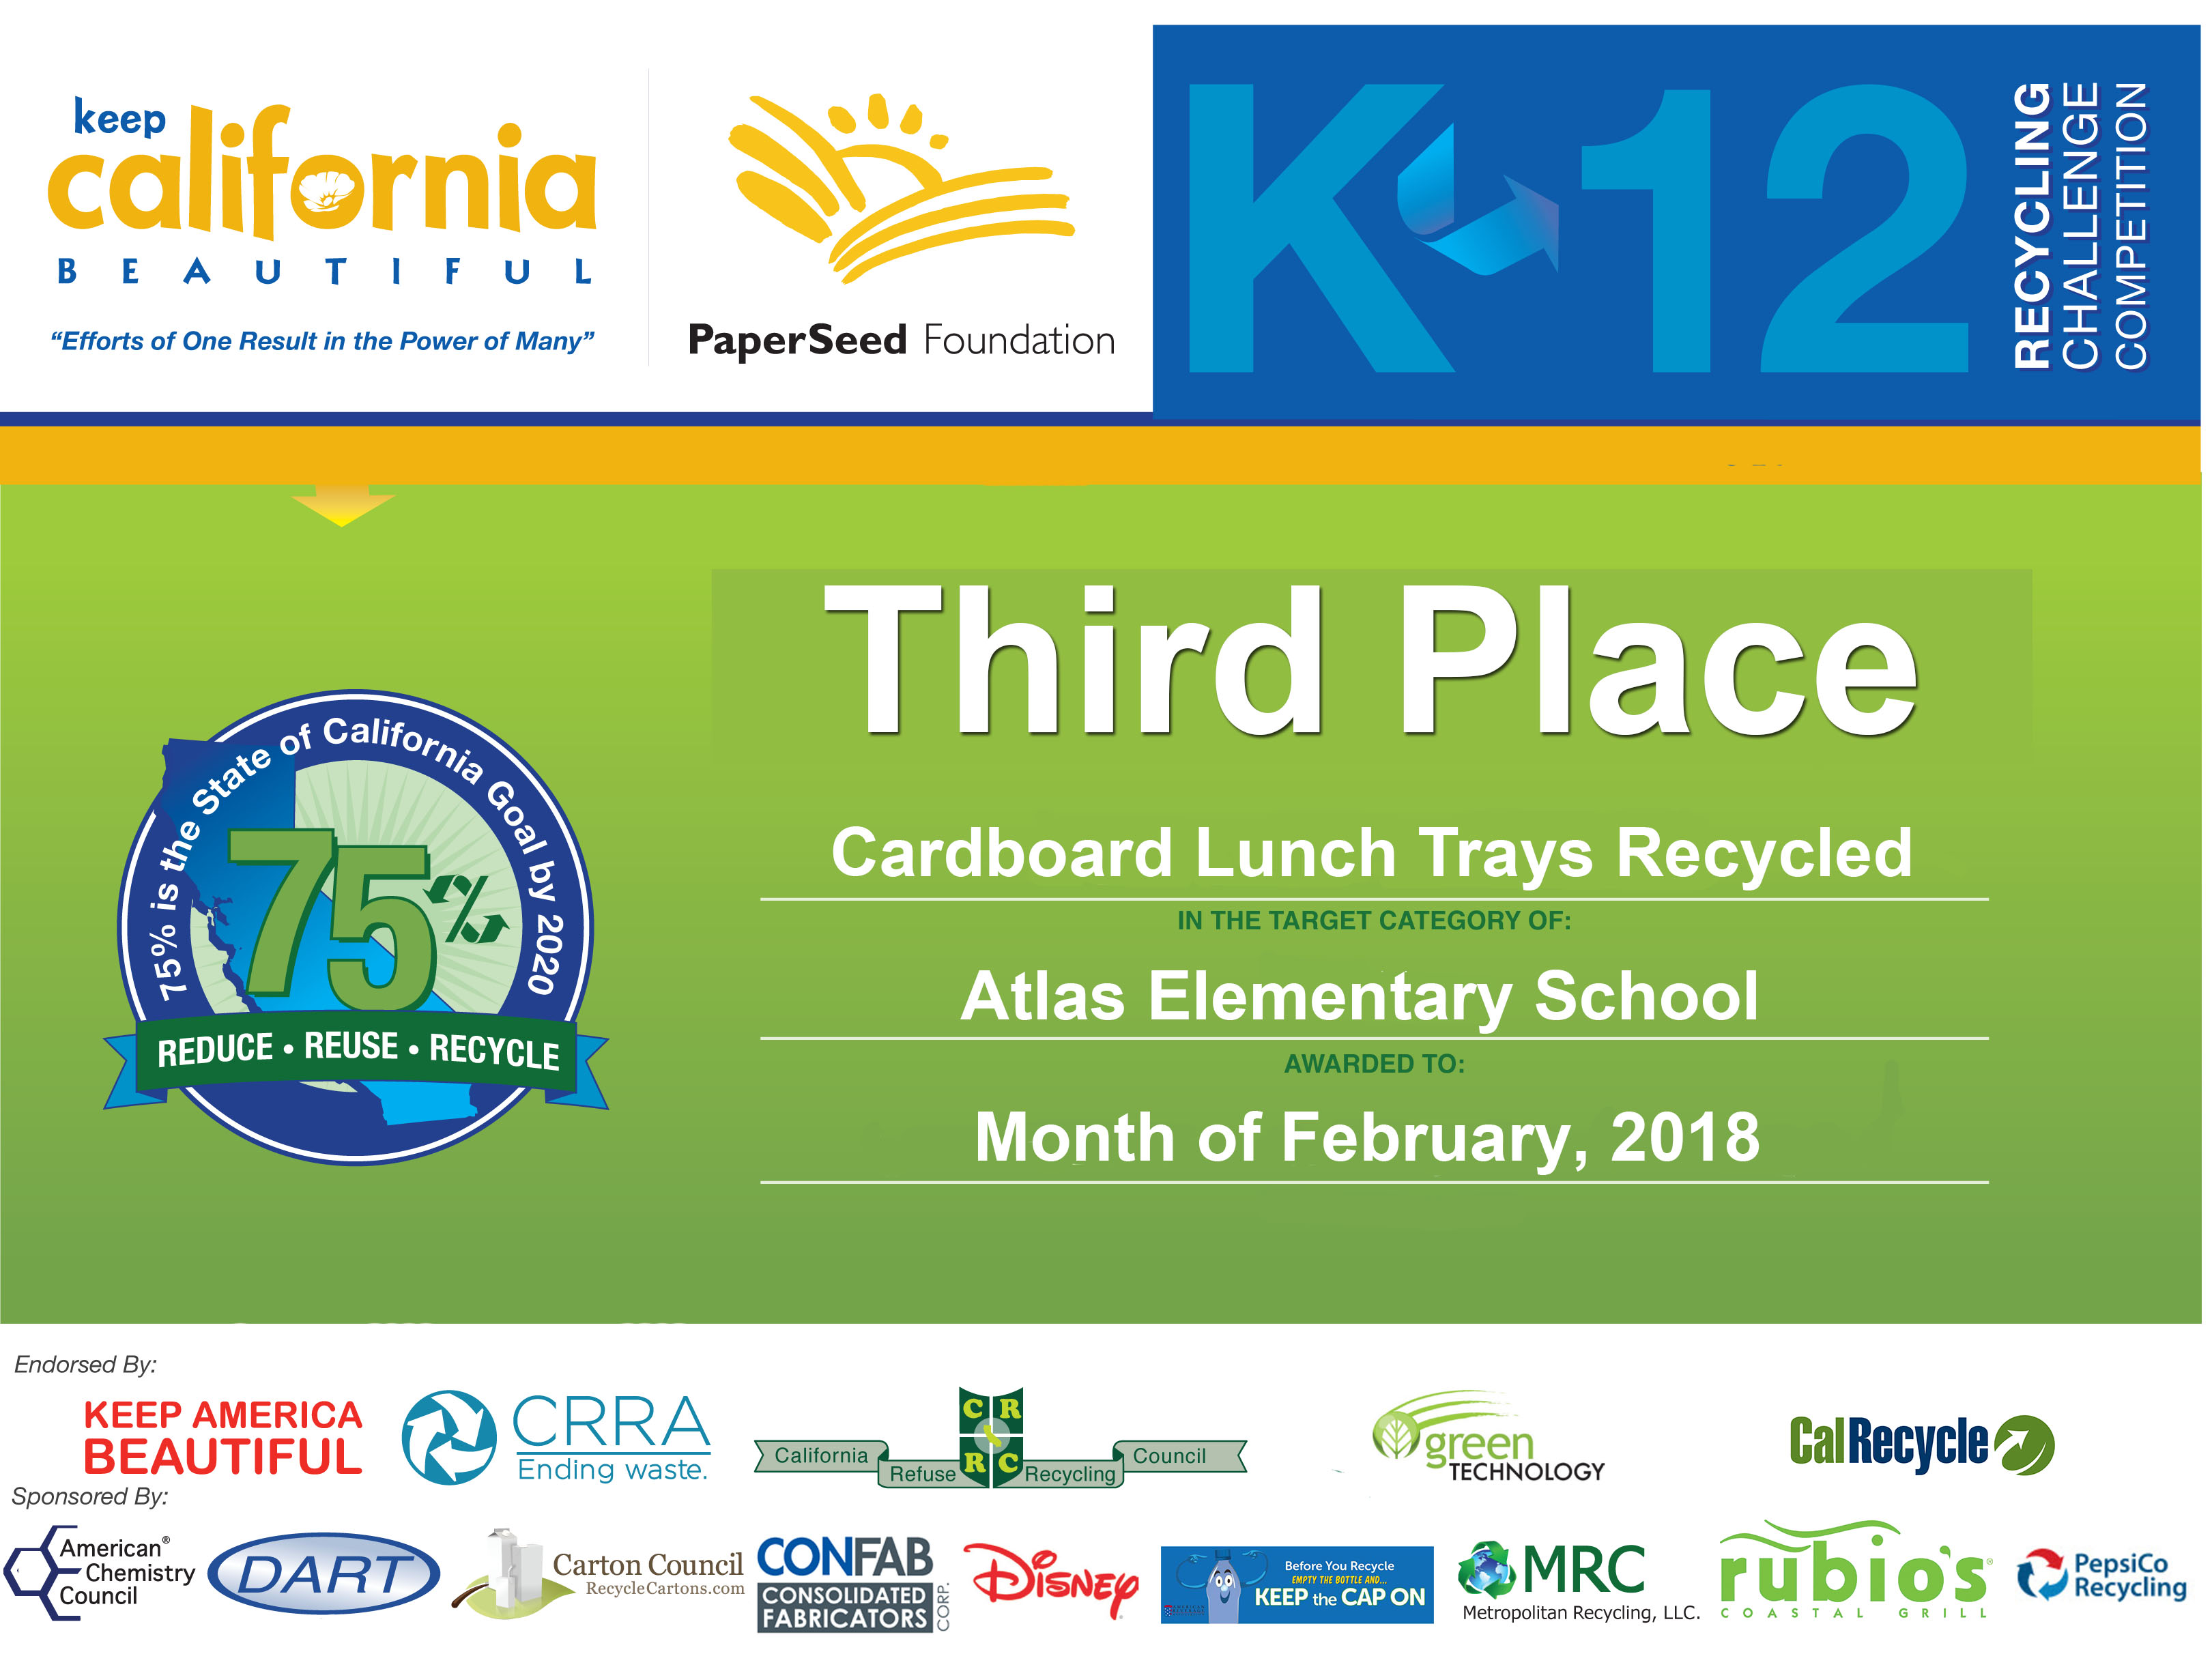 3rd Place Cardboard Lunch Trays Recycled- Atlas Elementary School